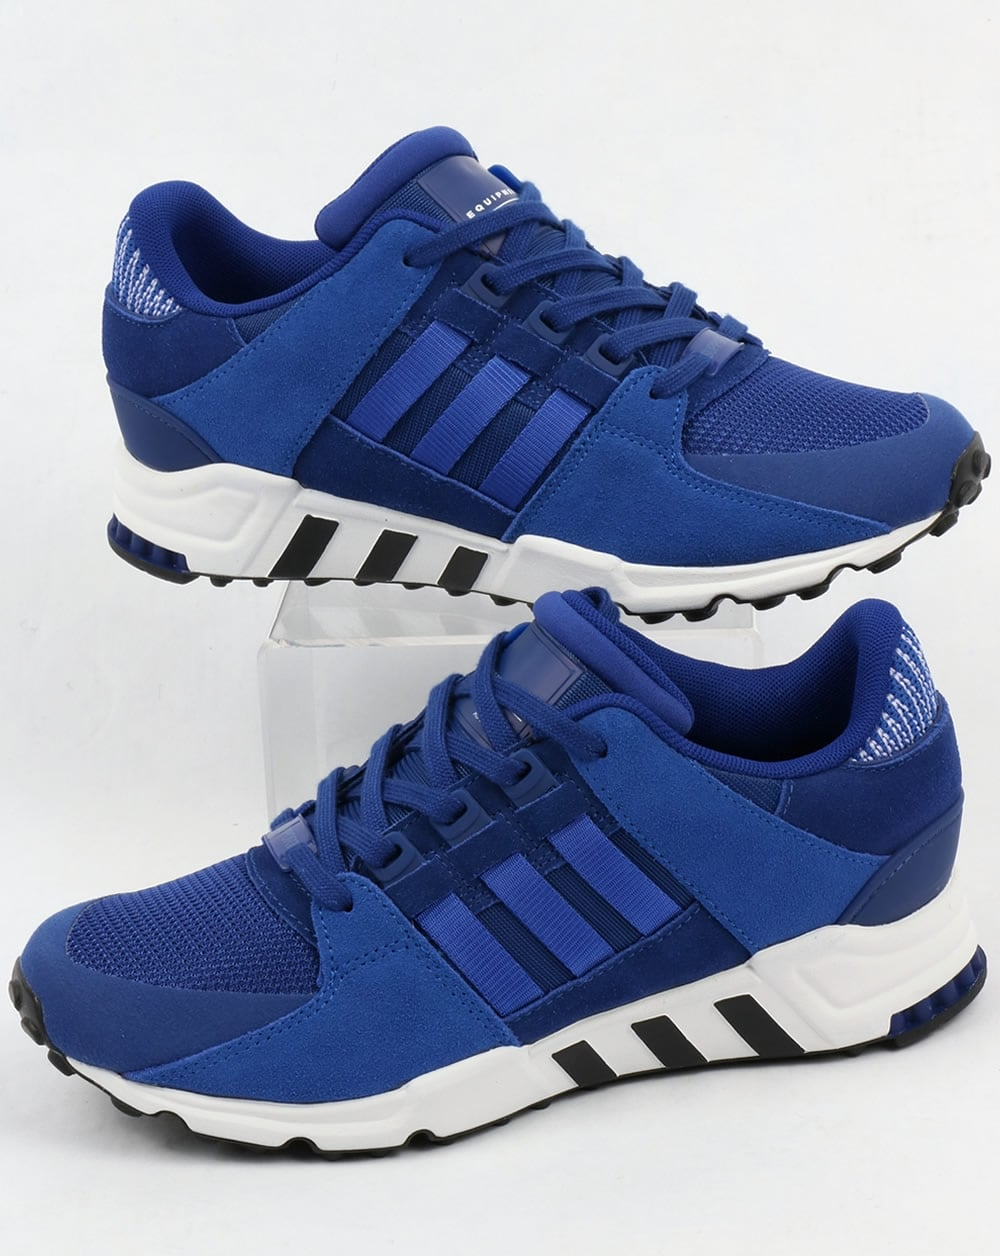 quality design 36868 bb8ec adidas Trainers Adidas EQT Support RF Trainers Mystery InkBold Blue